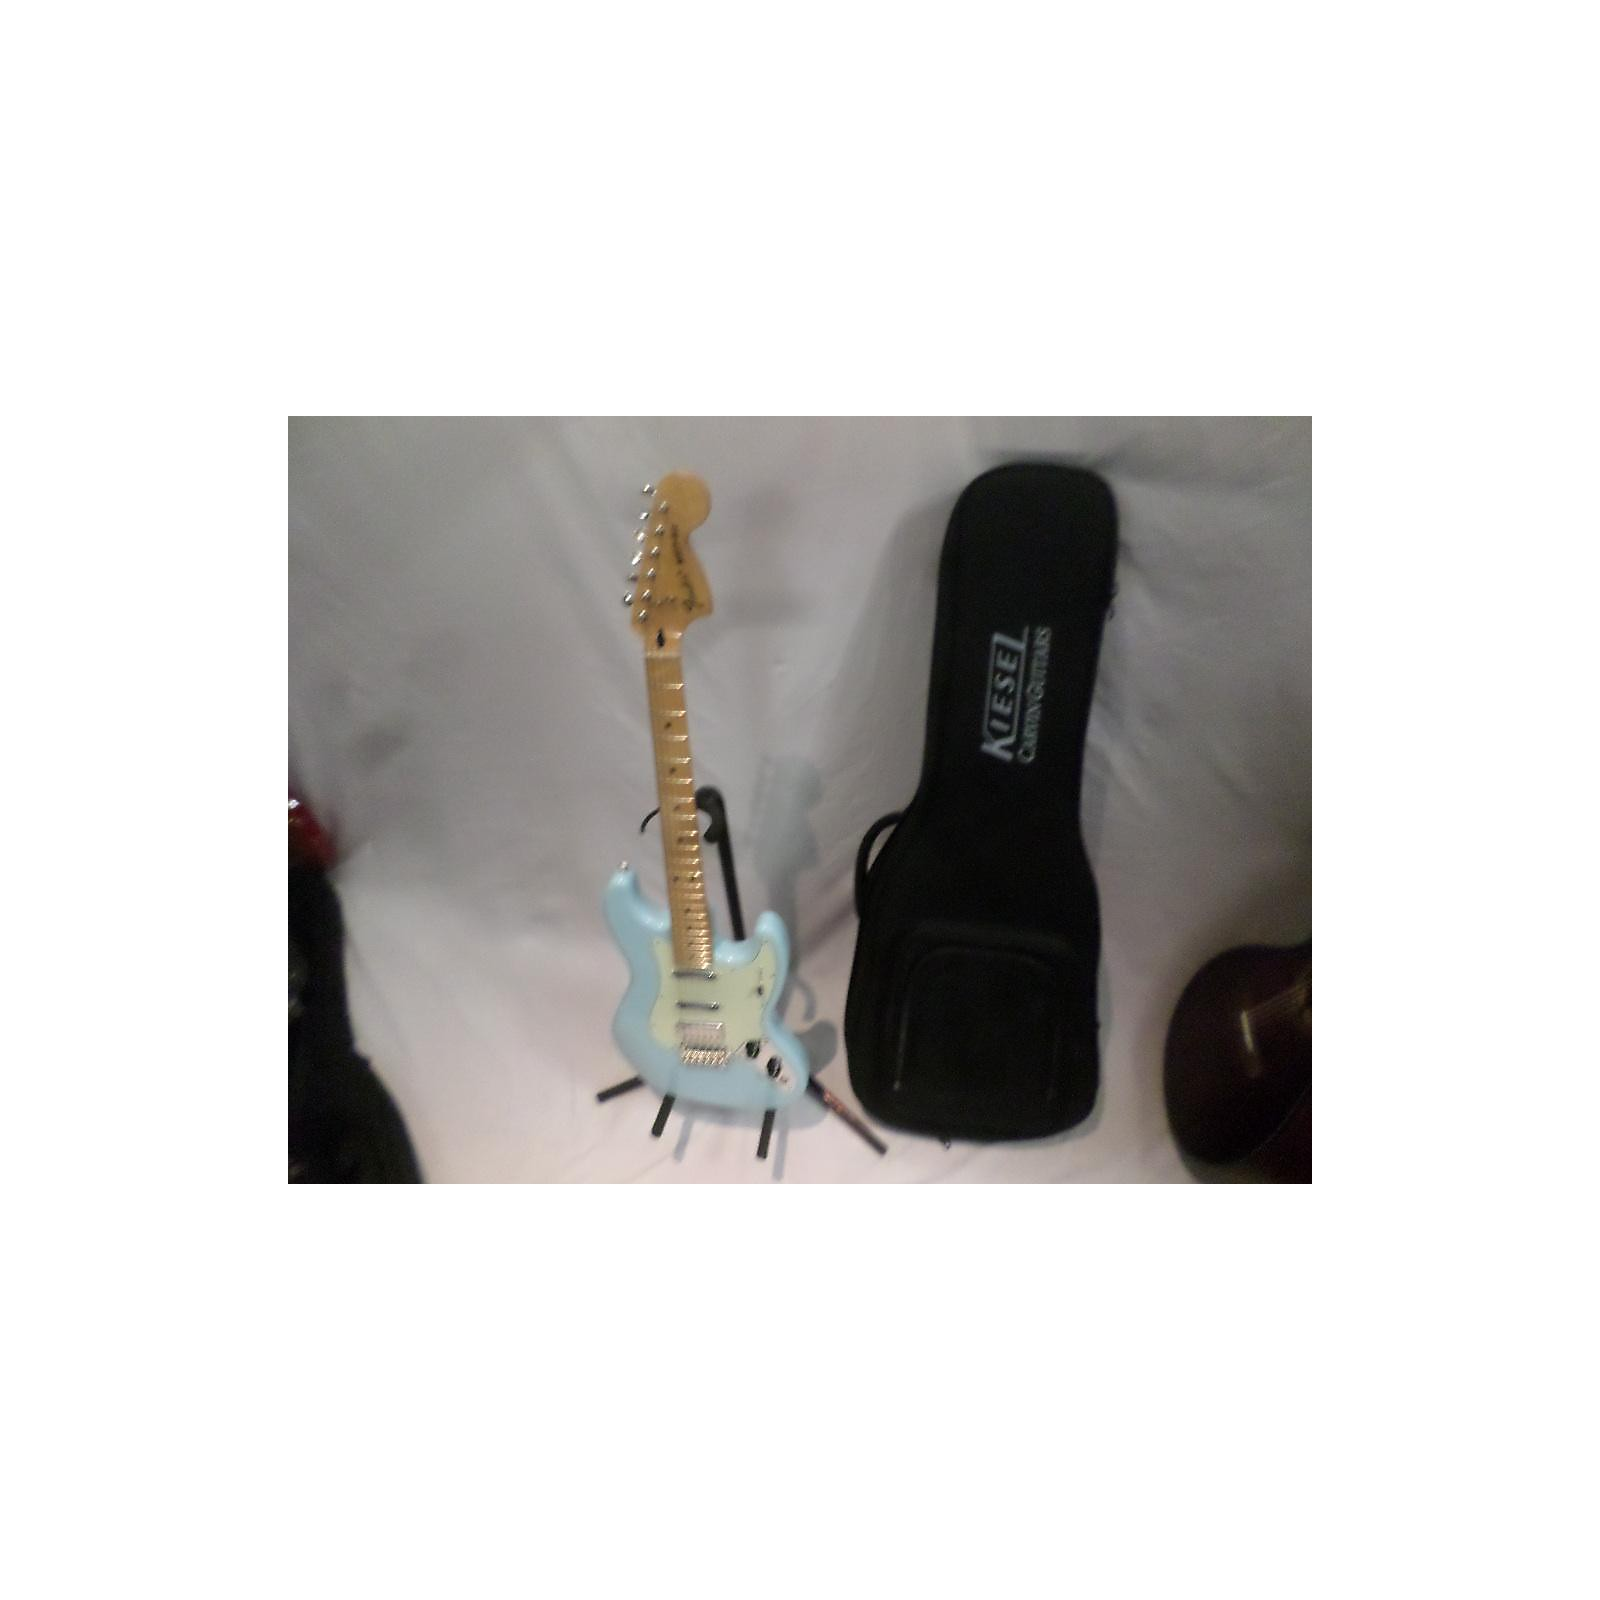 Fender Sixty-Six Solid Body Electric Guitar